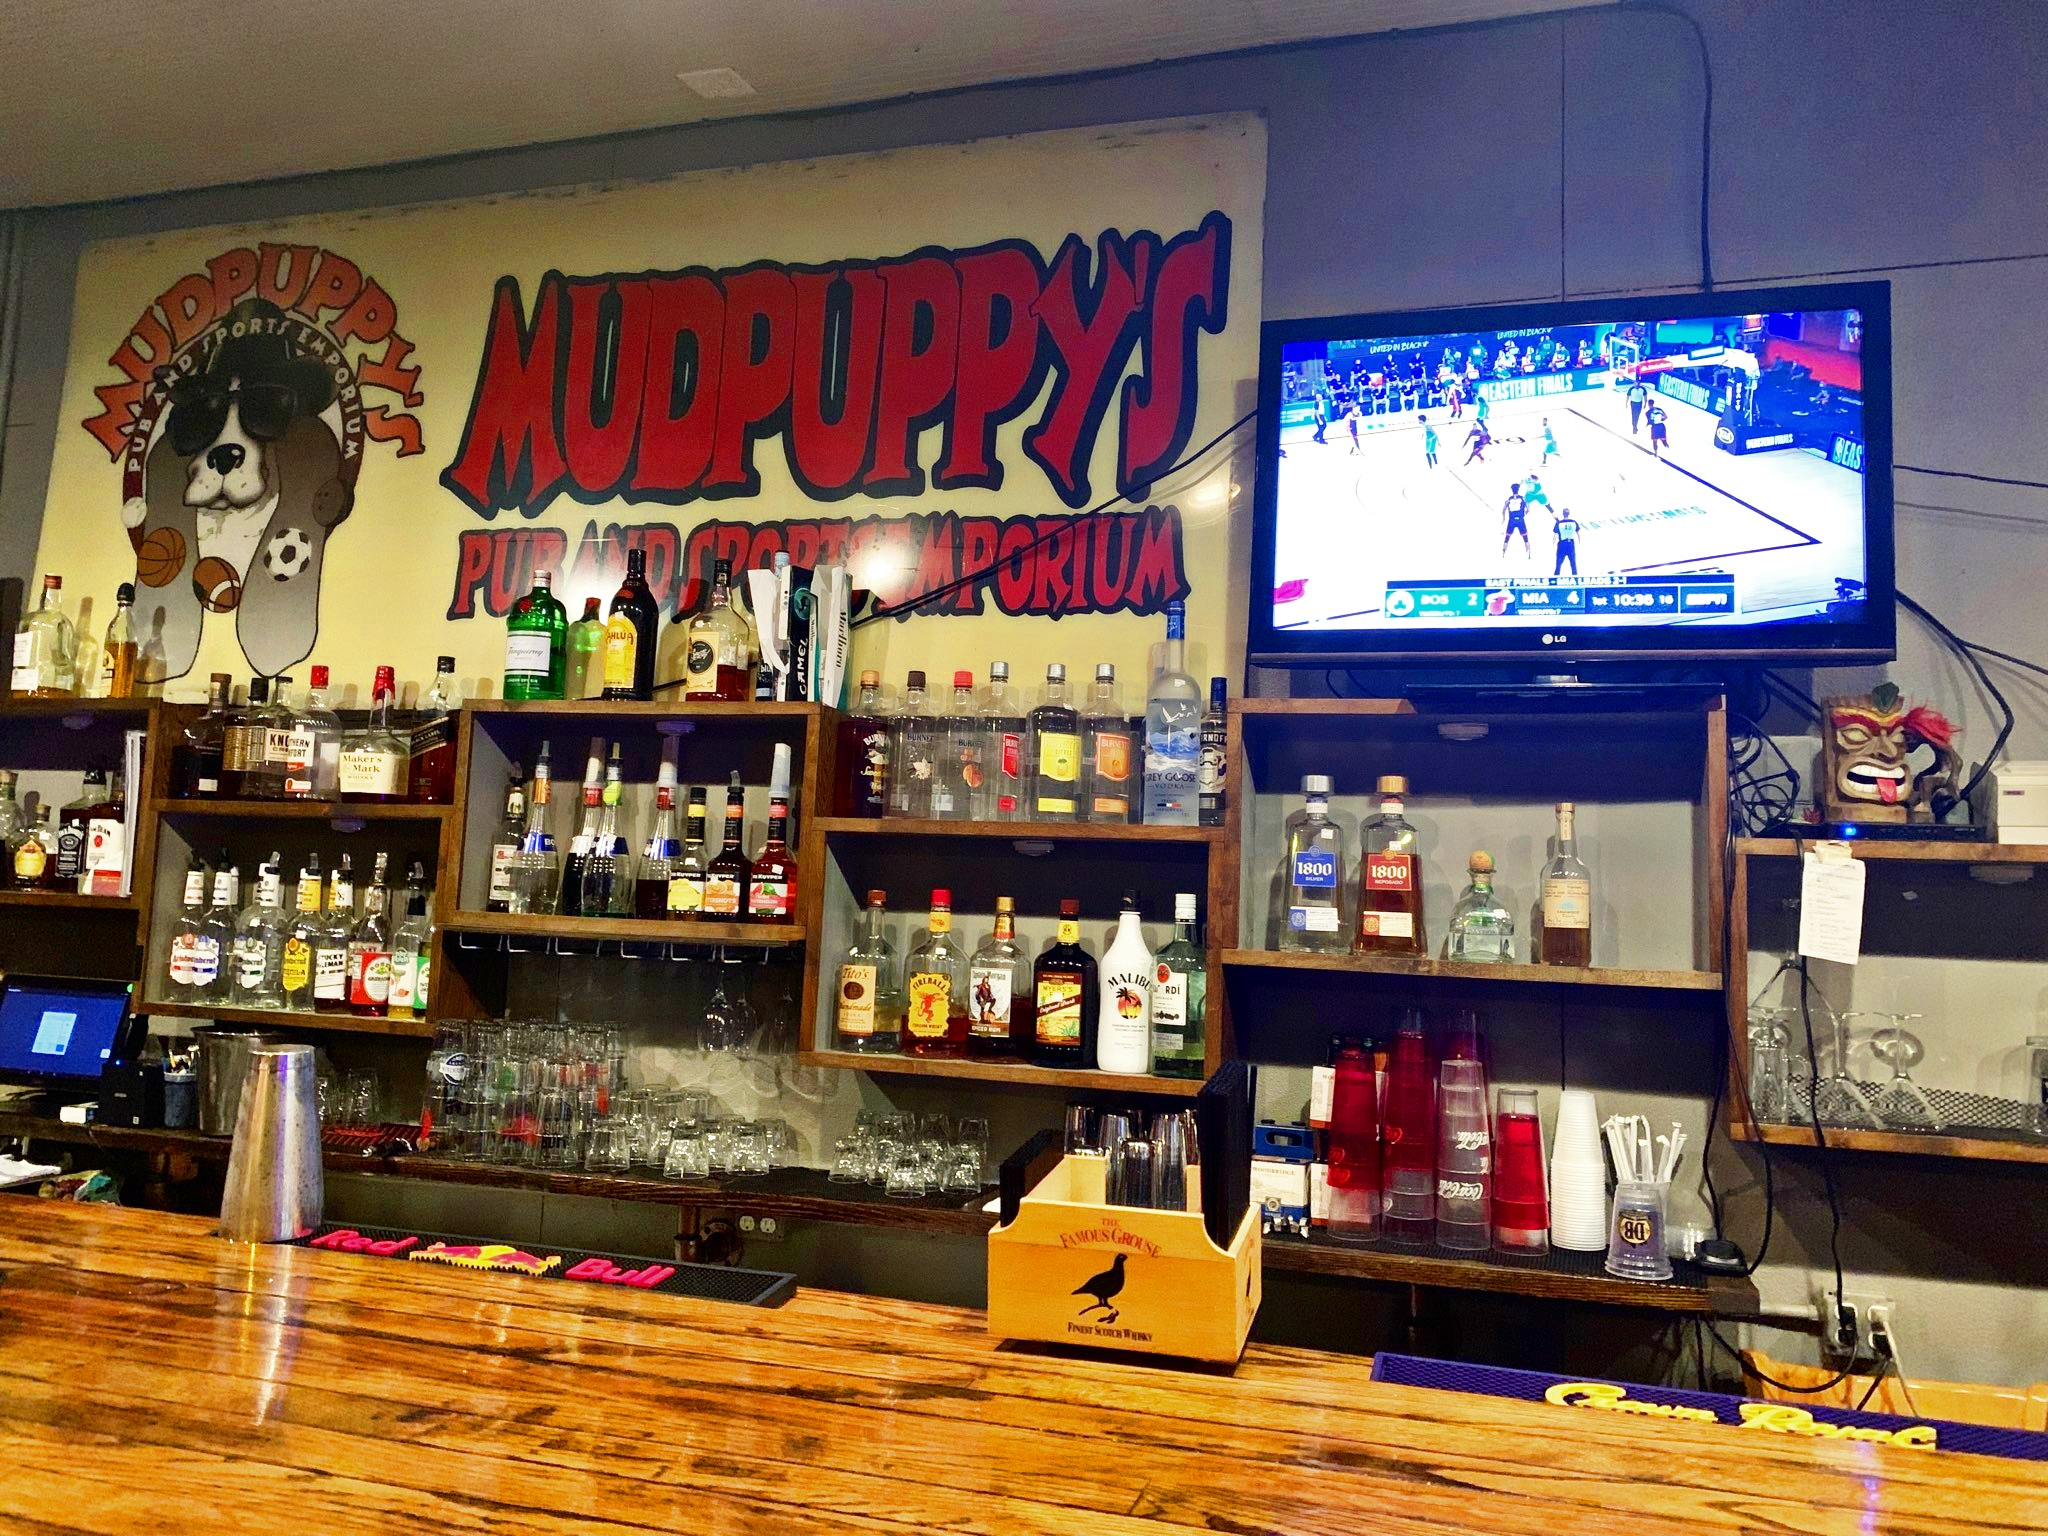 Mudpuppy's original bar